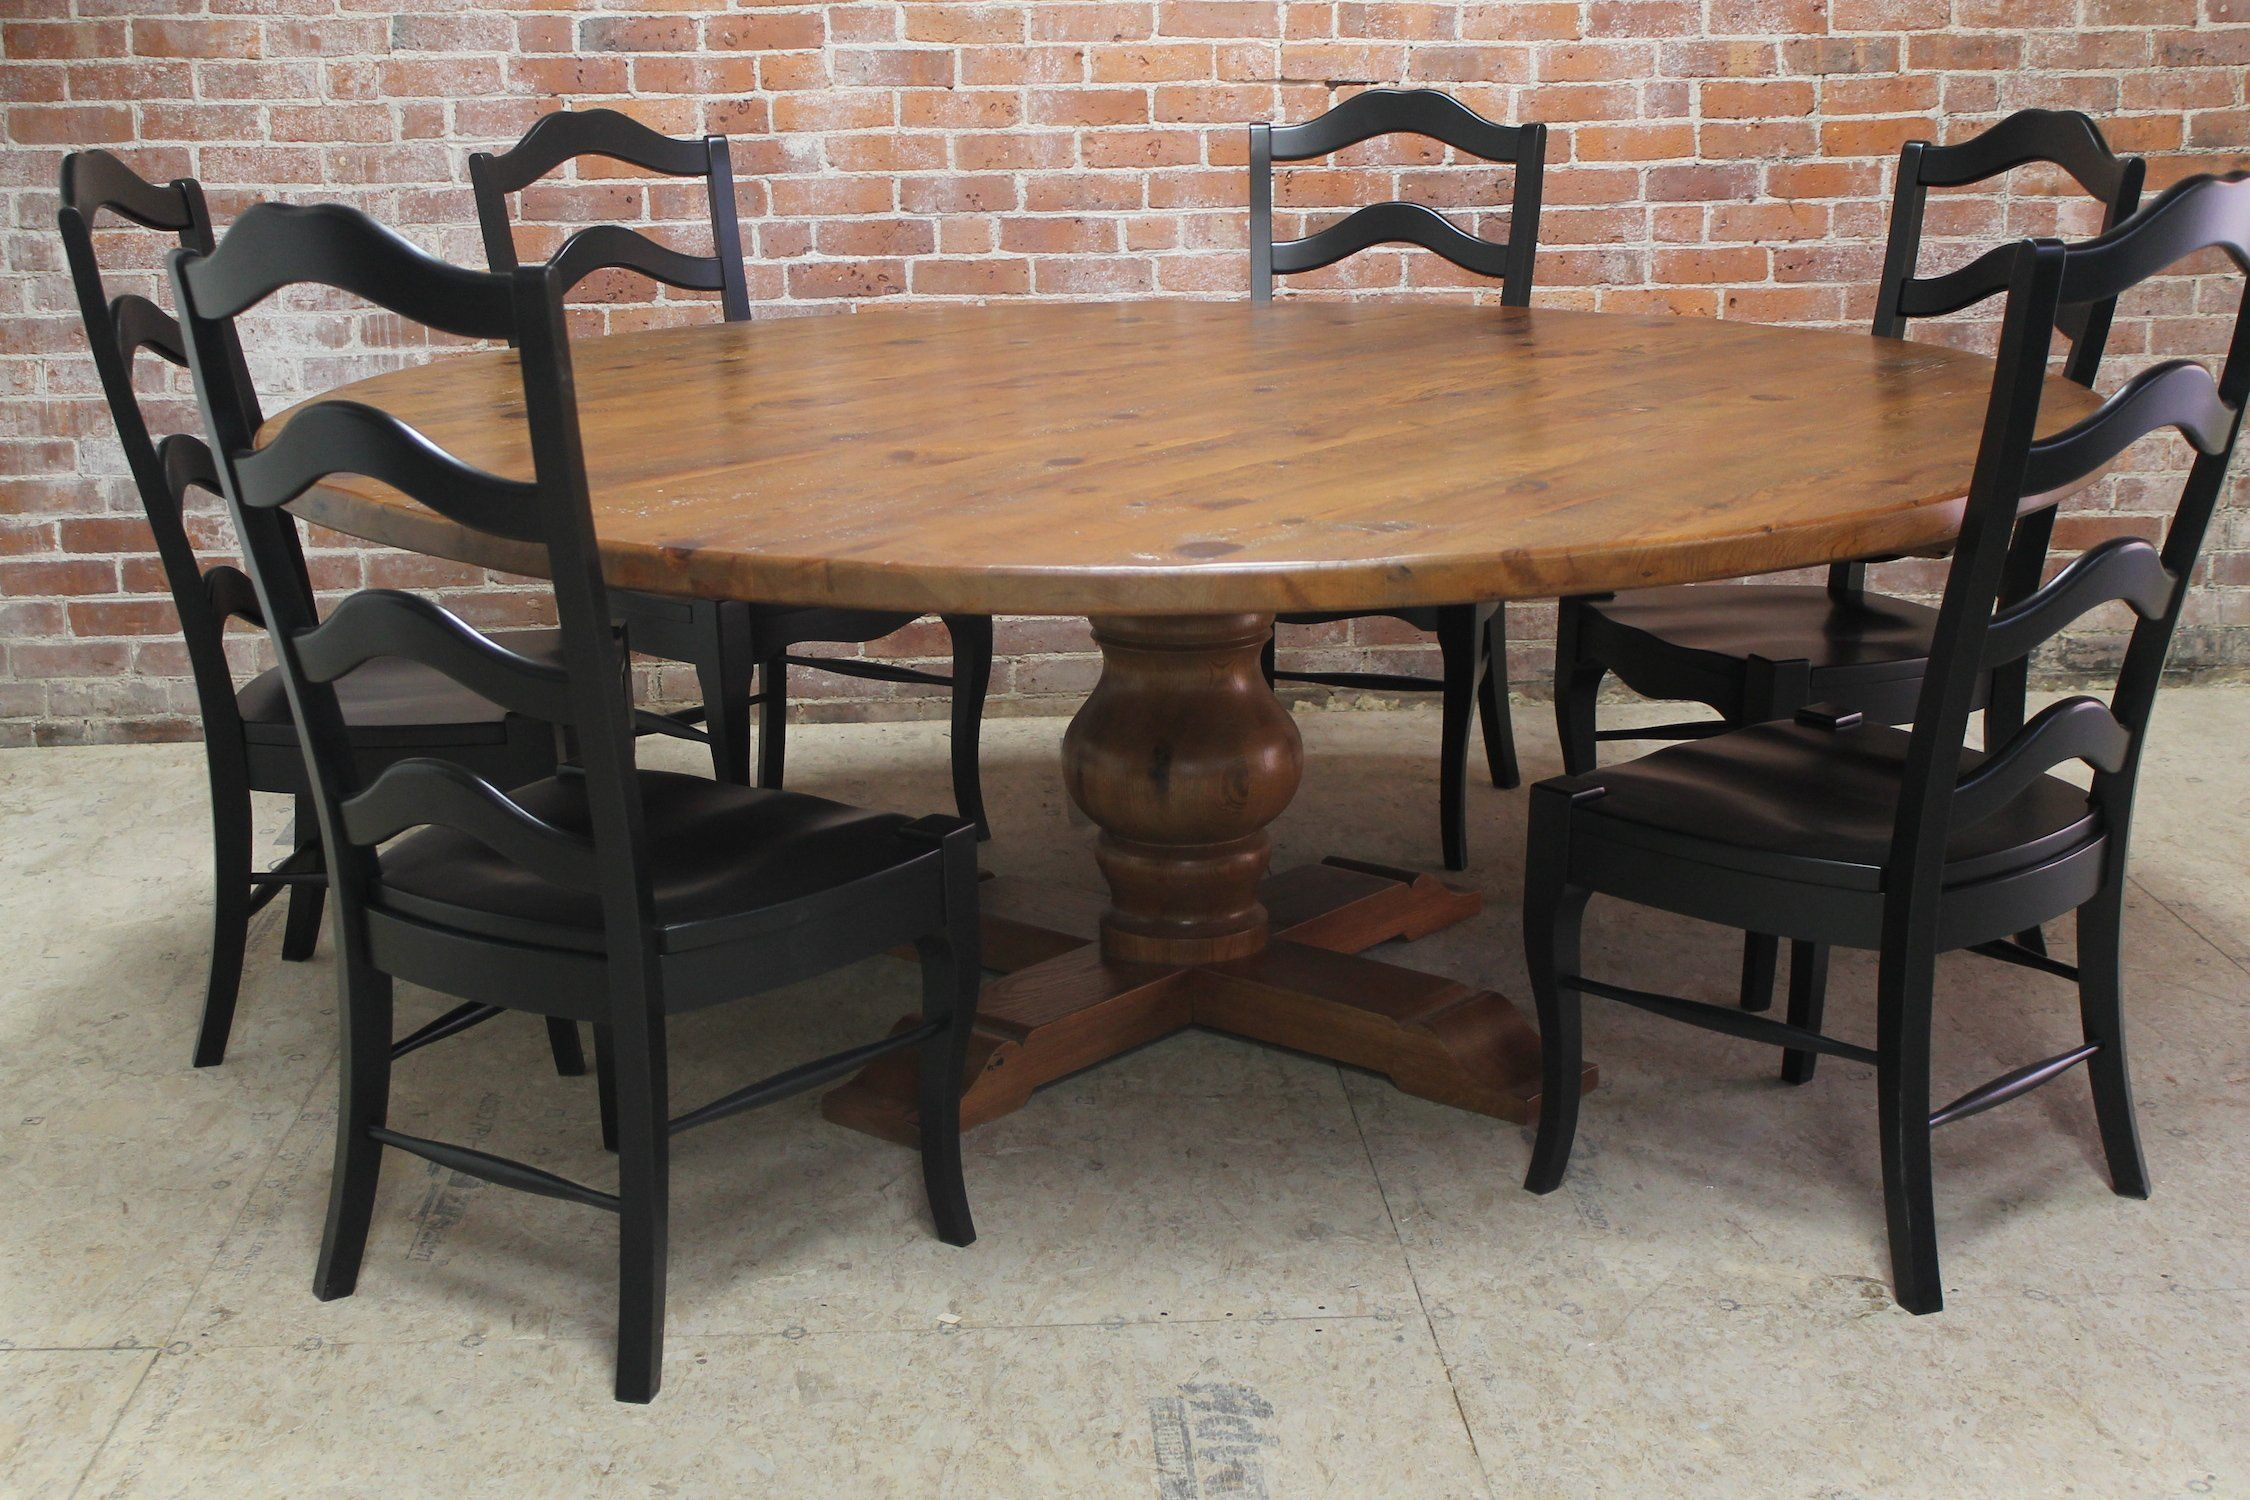 72 Inch Round Dining Table For 8 Round Dining Table